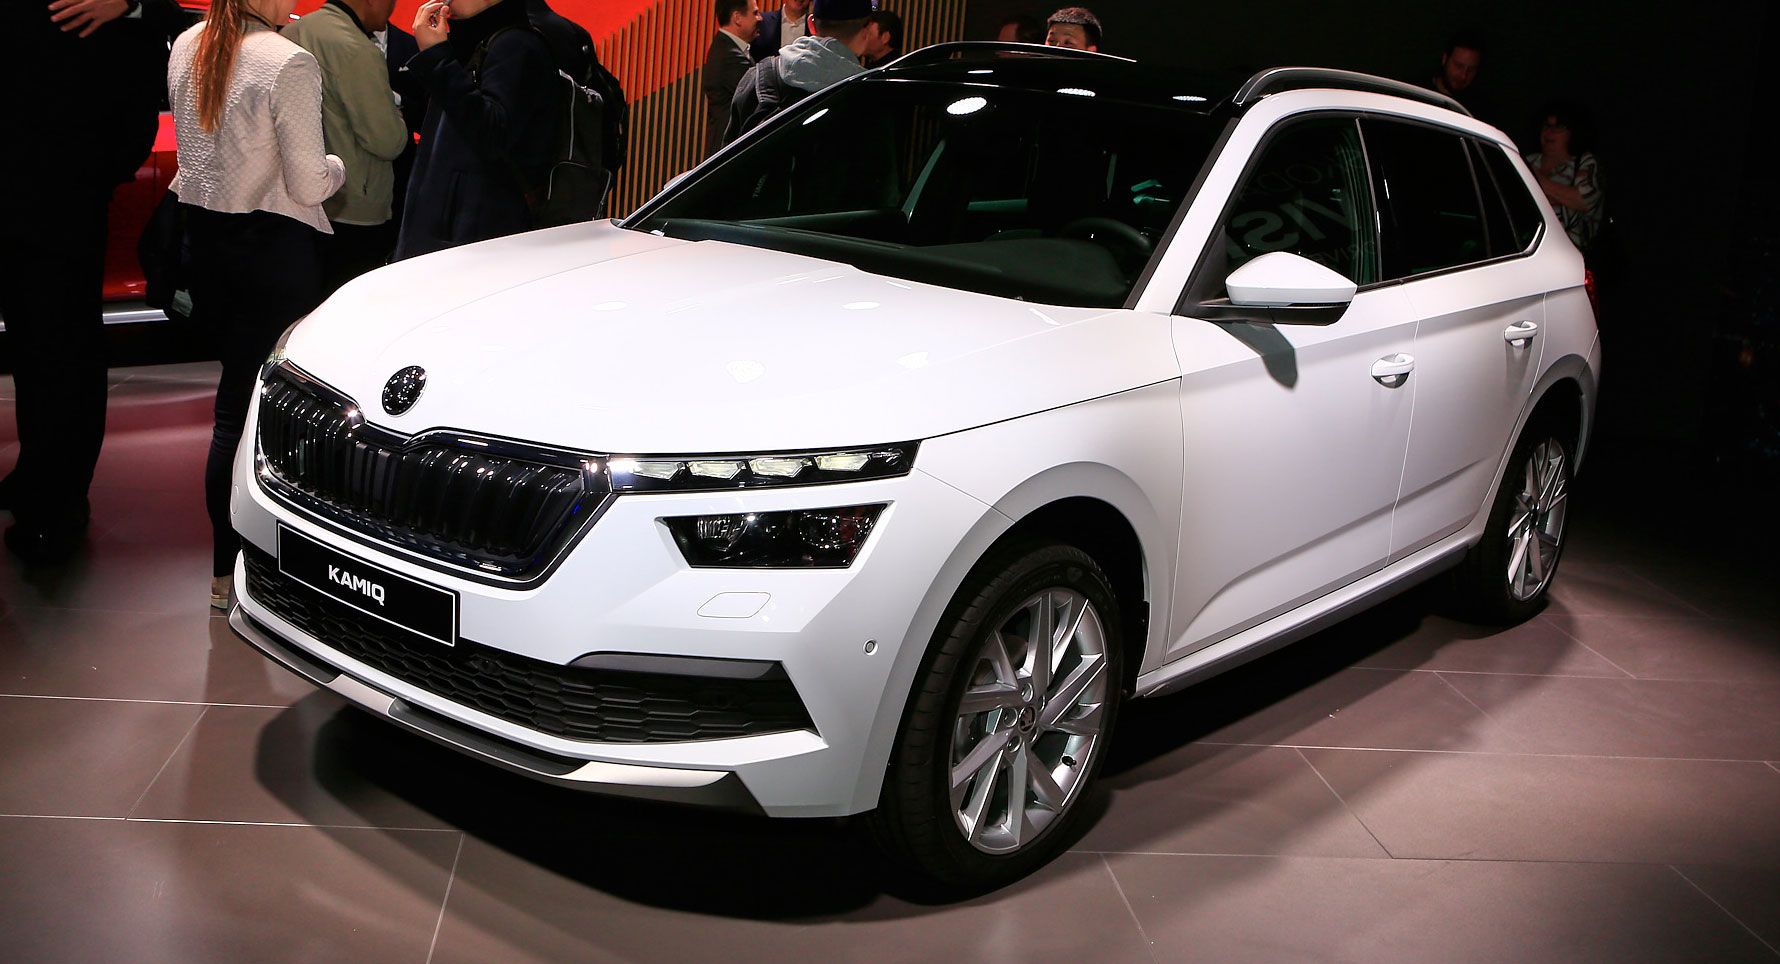 Skoda Kamiq Is One Boldly Styled Subcompact Crossover